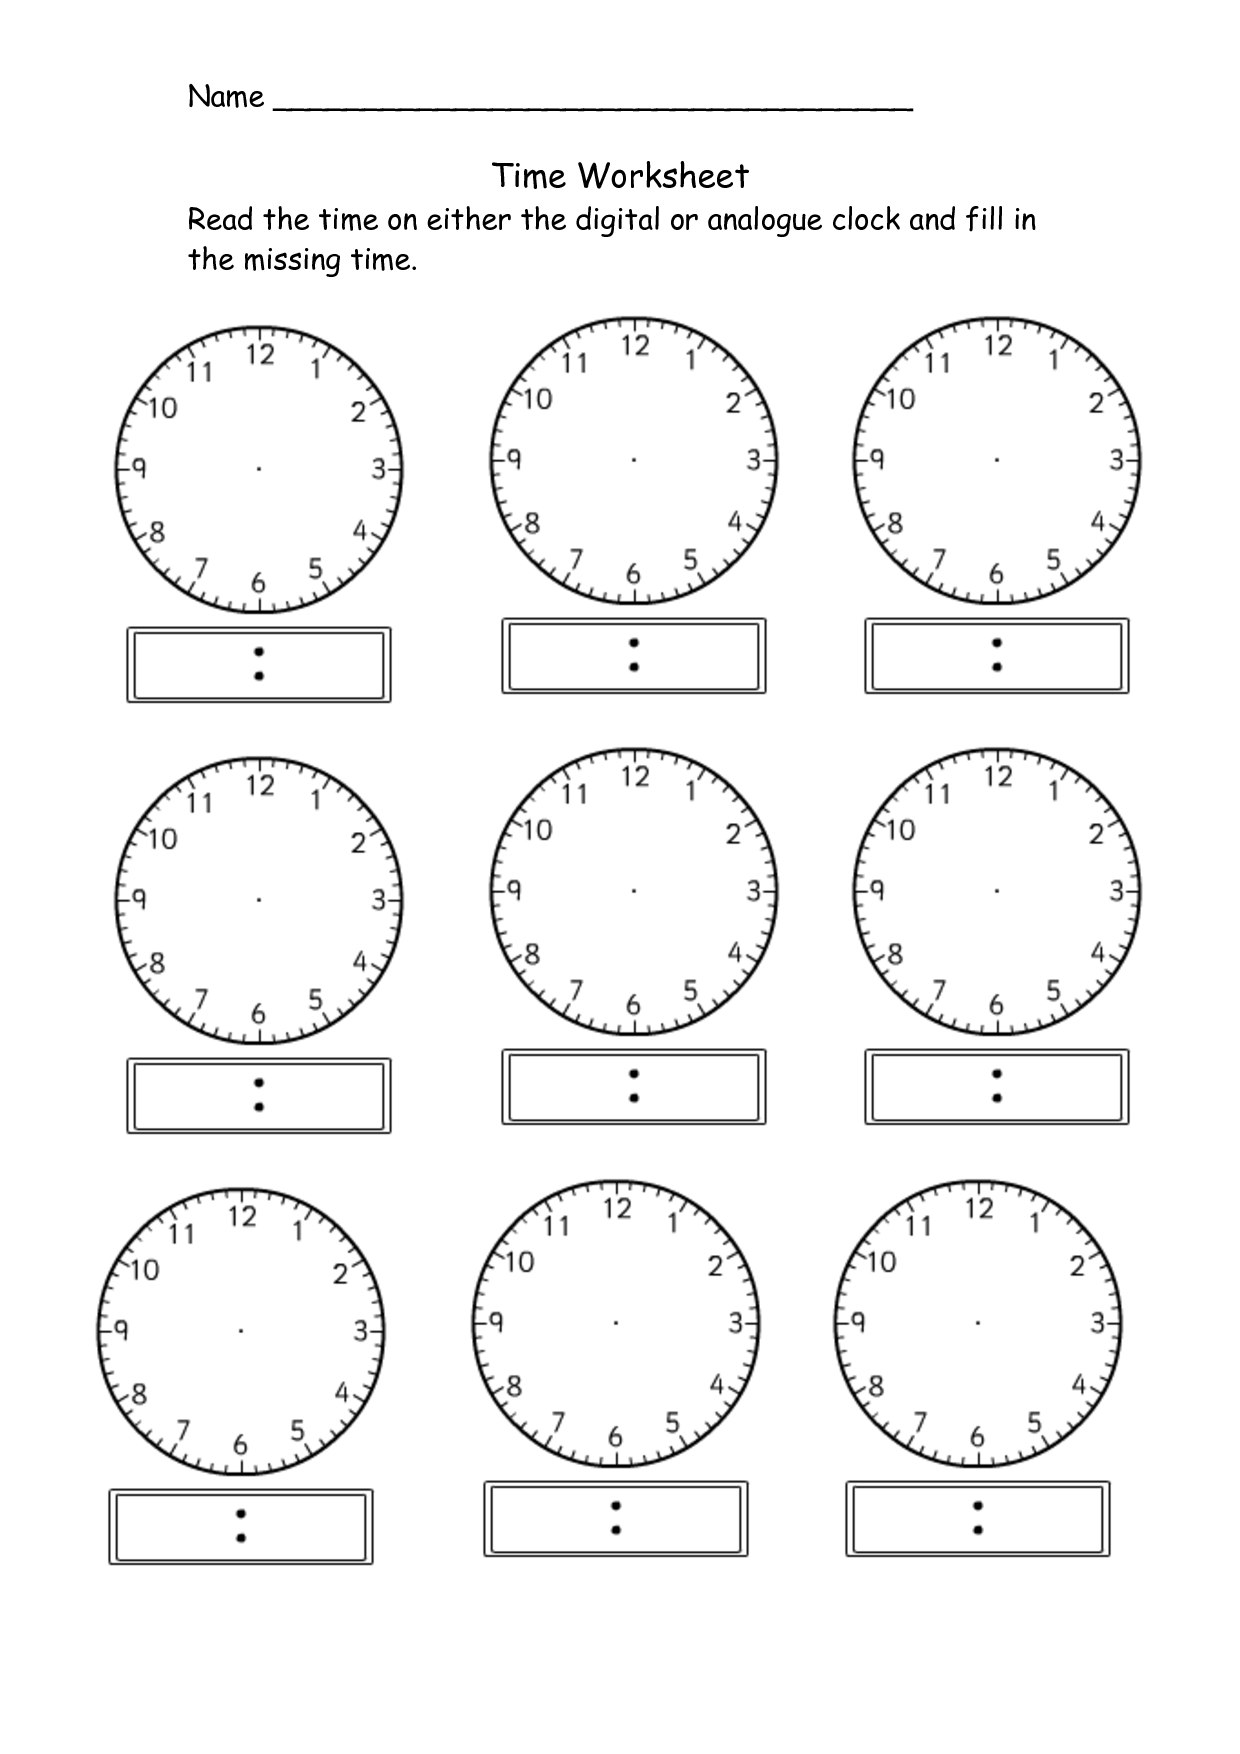 worksheet Blank Clocks Worksheet blank clock worksheet telling time kiddo shelter education home office 15 best images of digital worksheets intended for clocks the most amazing